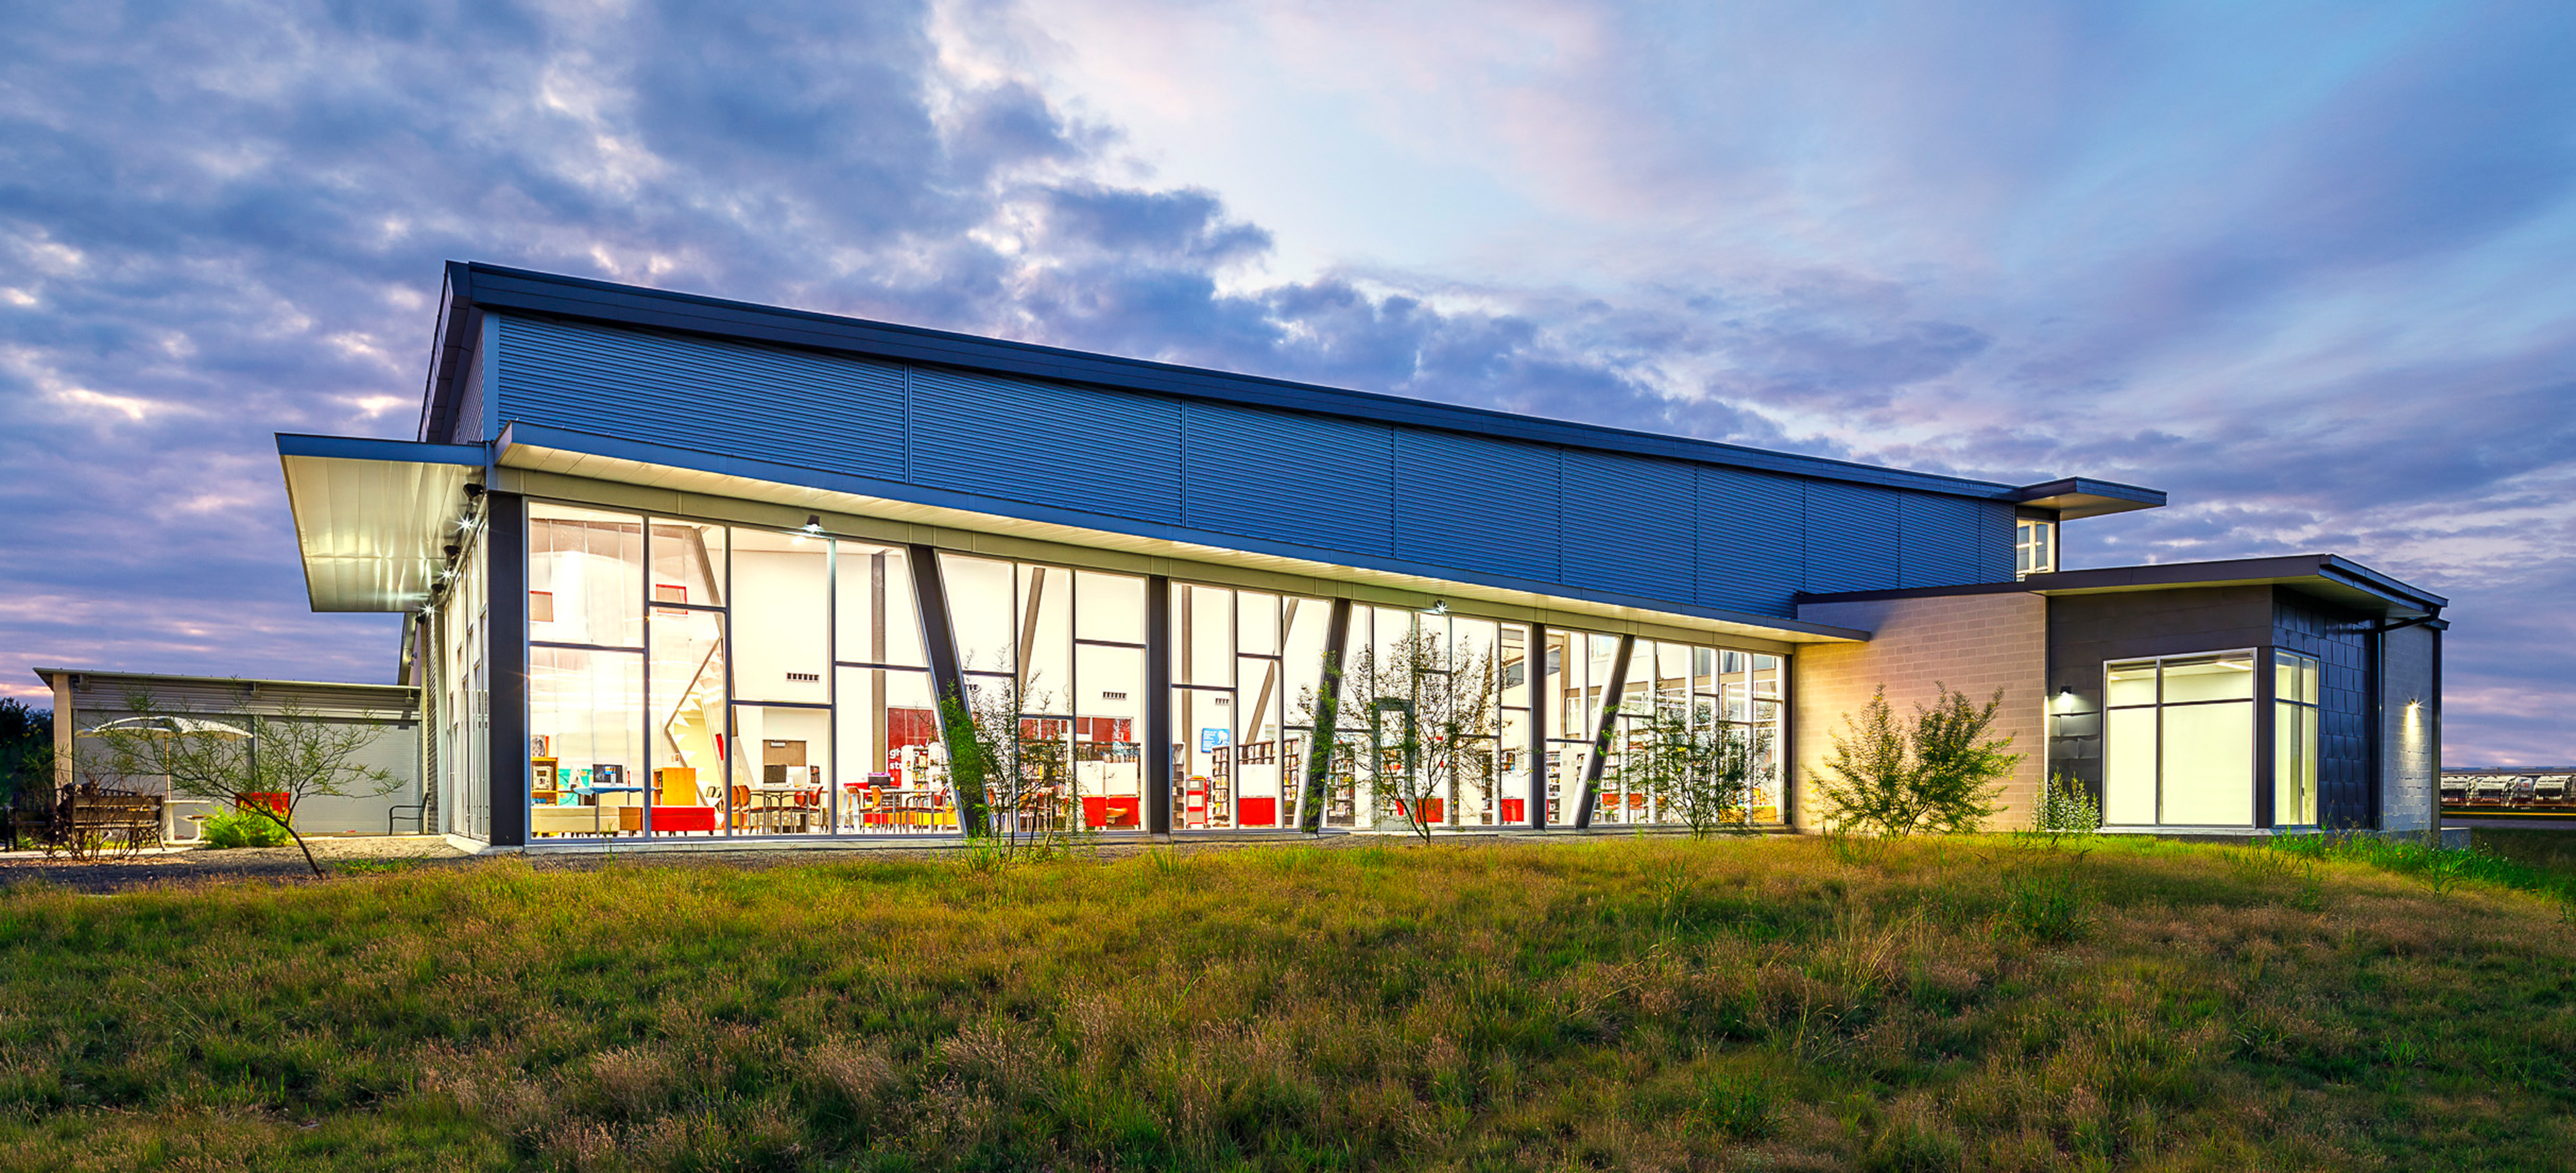 Designed by LPA Inc., the Schaefer Branch Library Celebrates Grand Opening